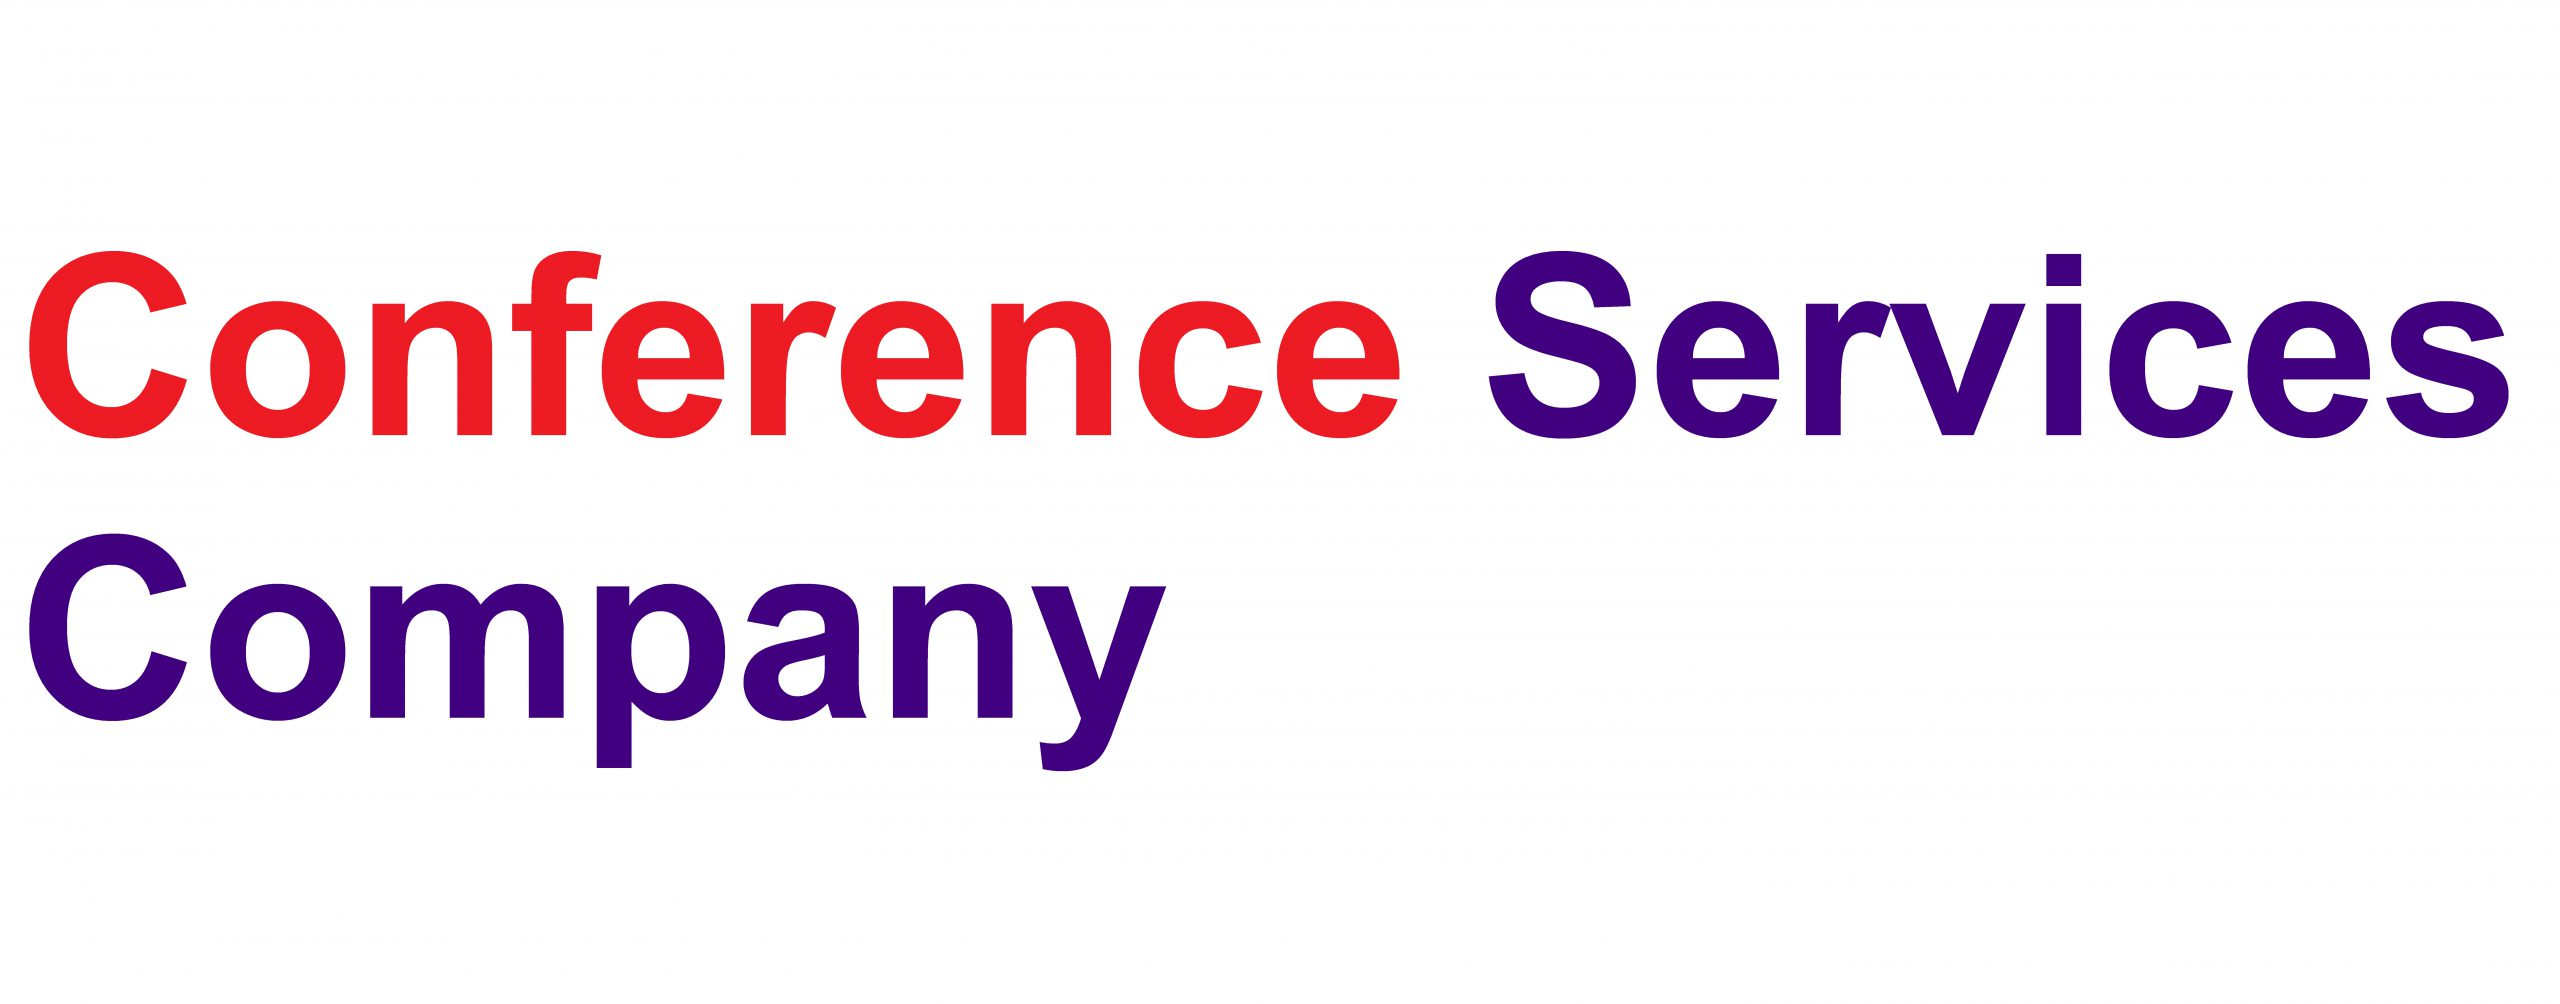 Conference Services Company